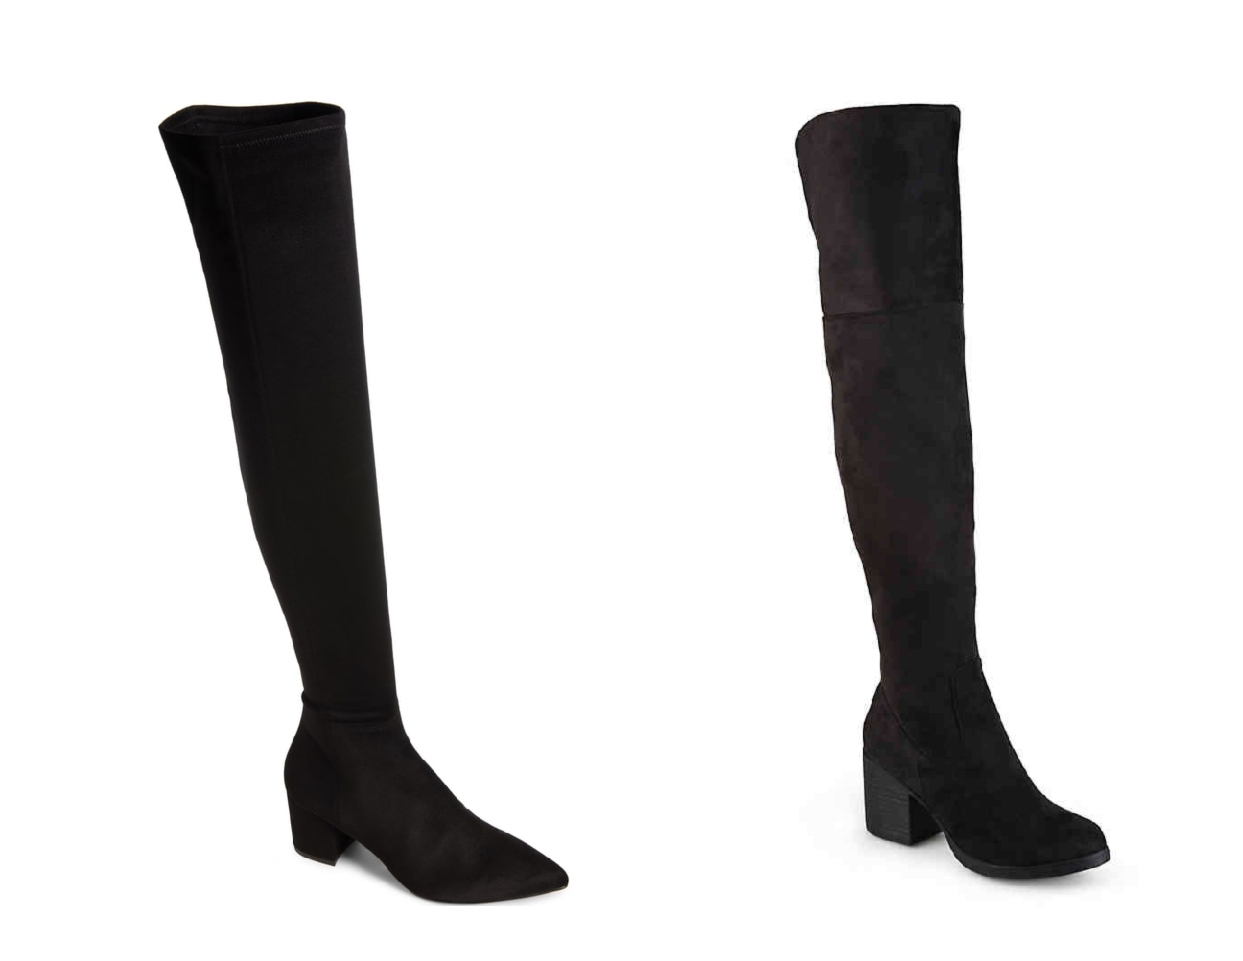 nordstrom anniversary sale dupes, black over the knee boots